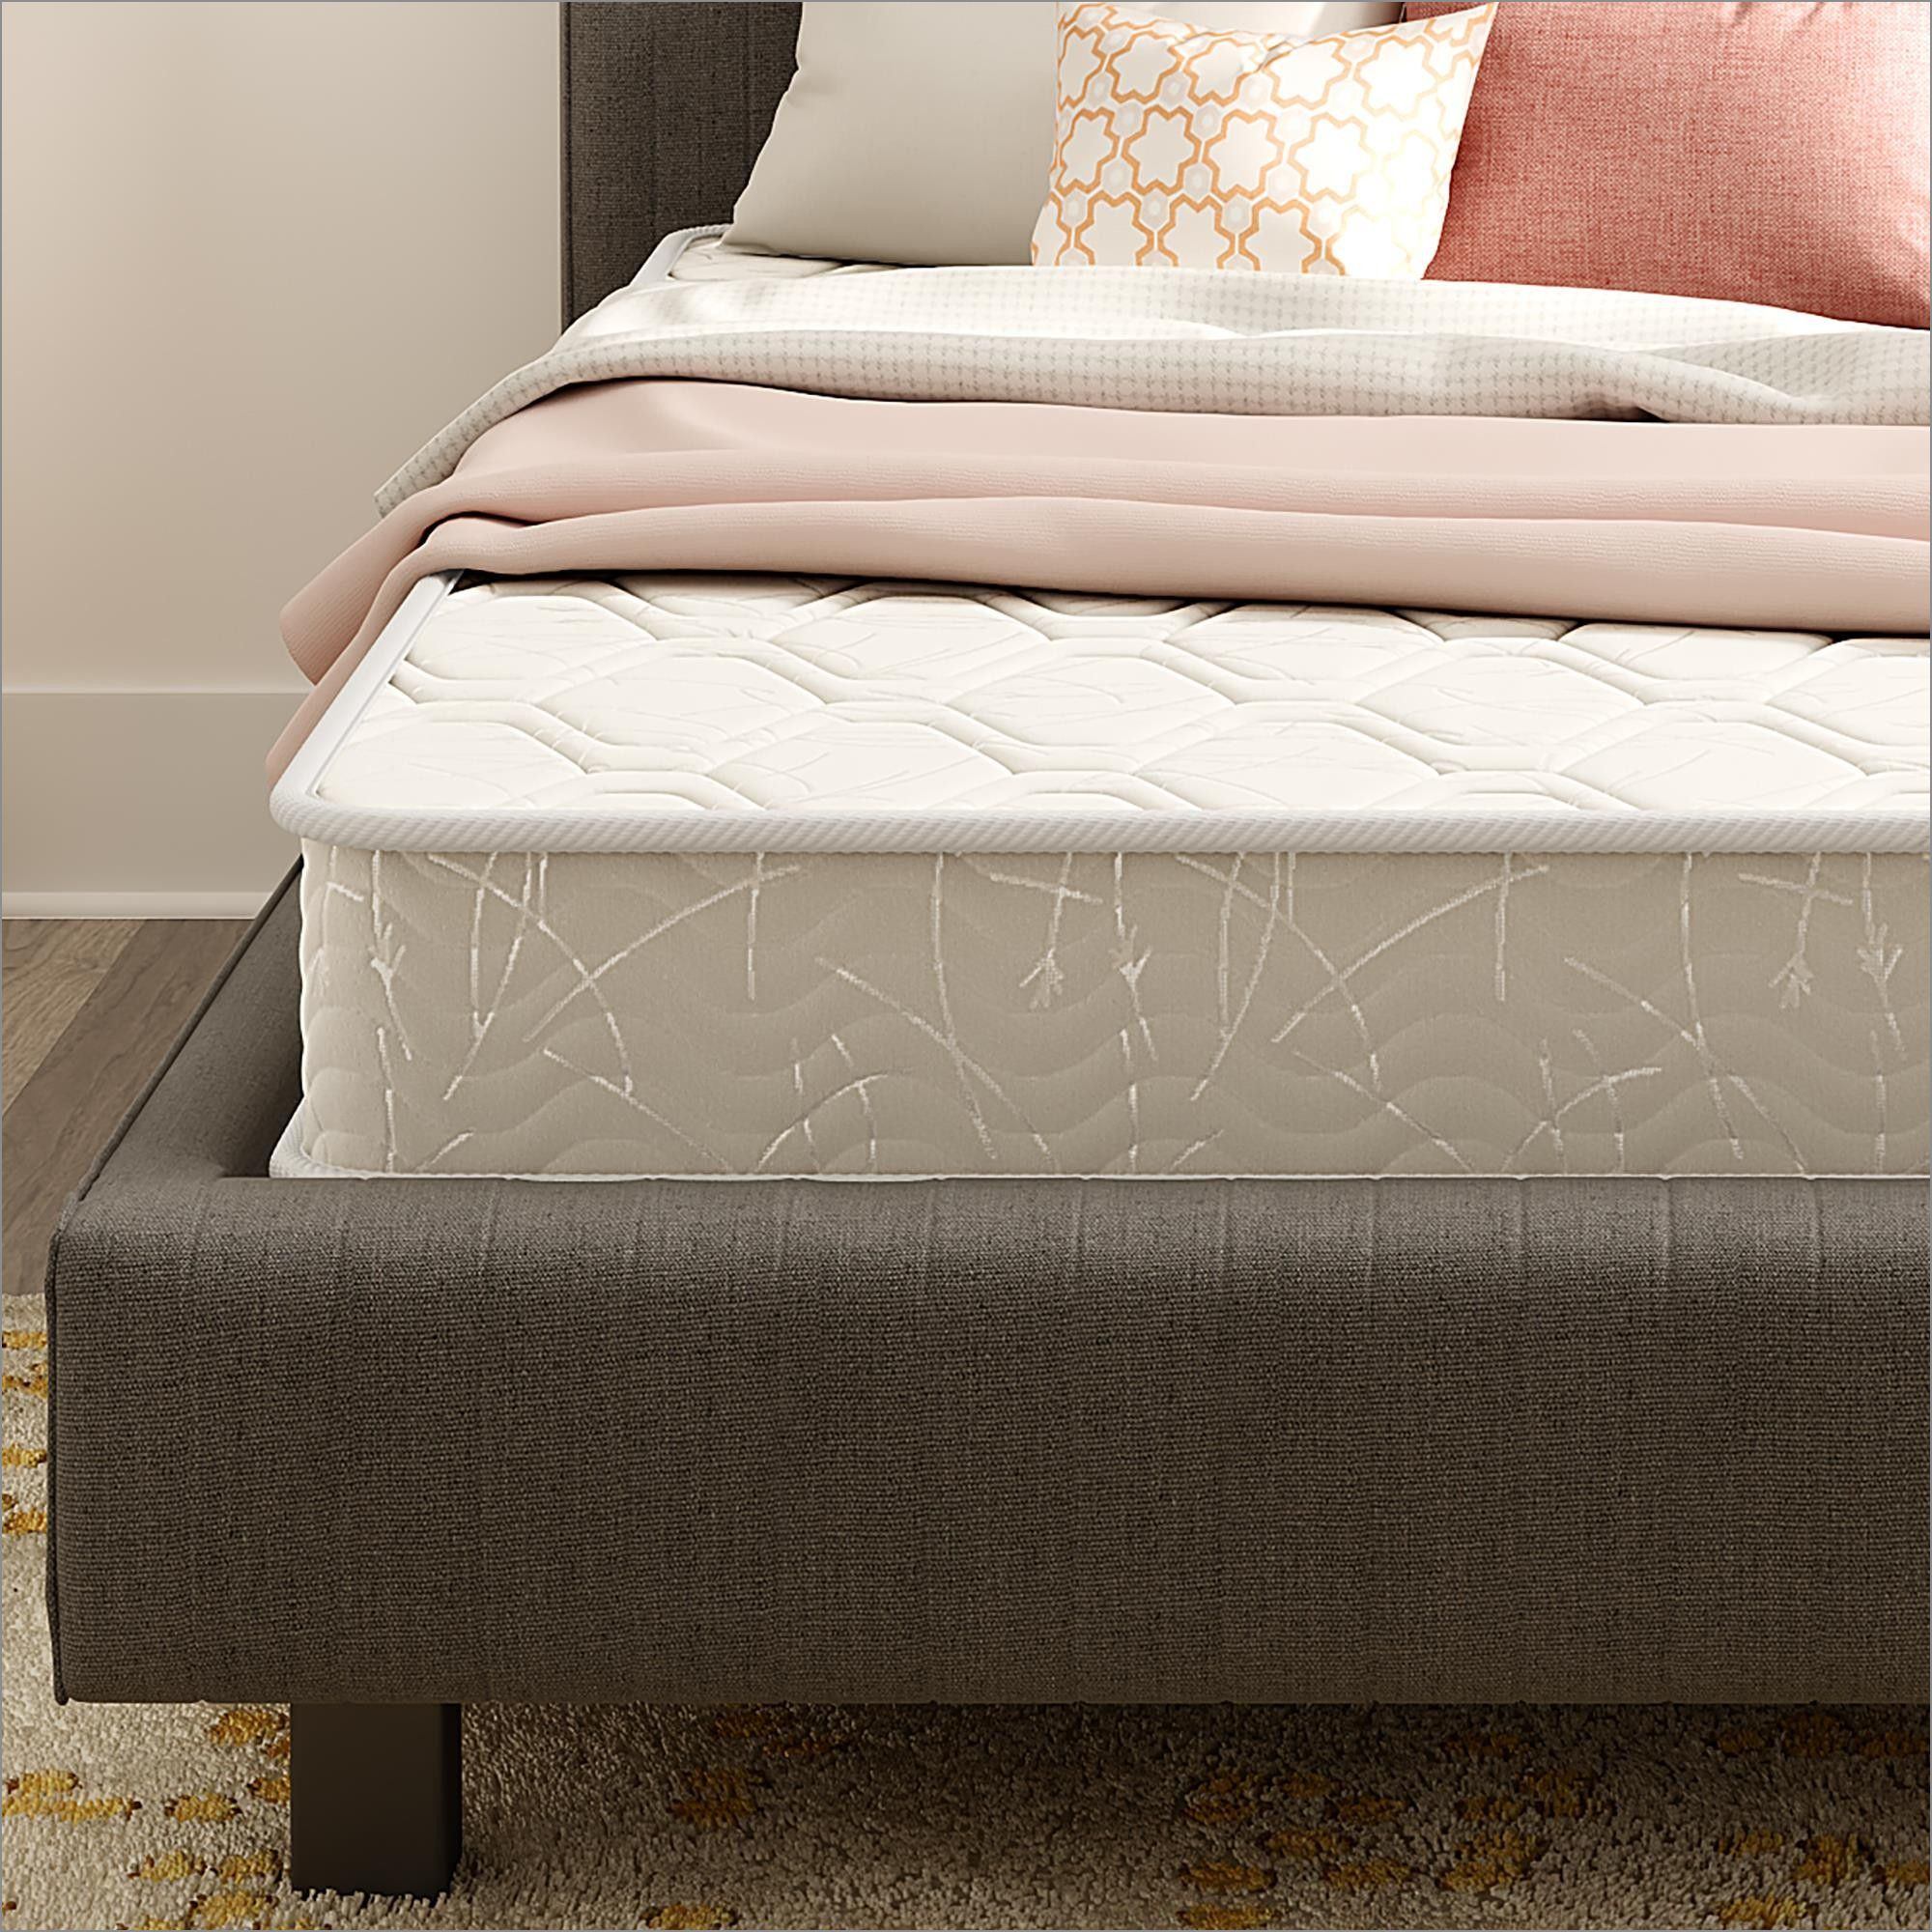 Furniture Row Mattresses Check more at https//www